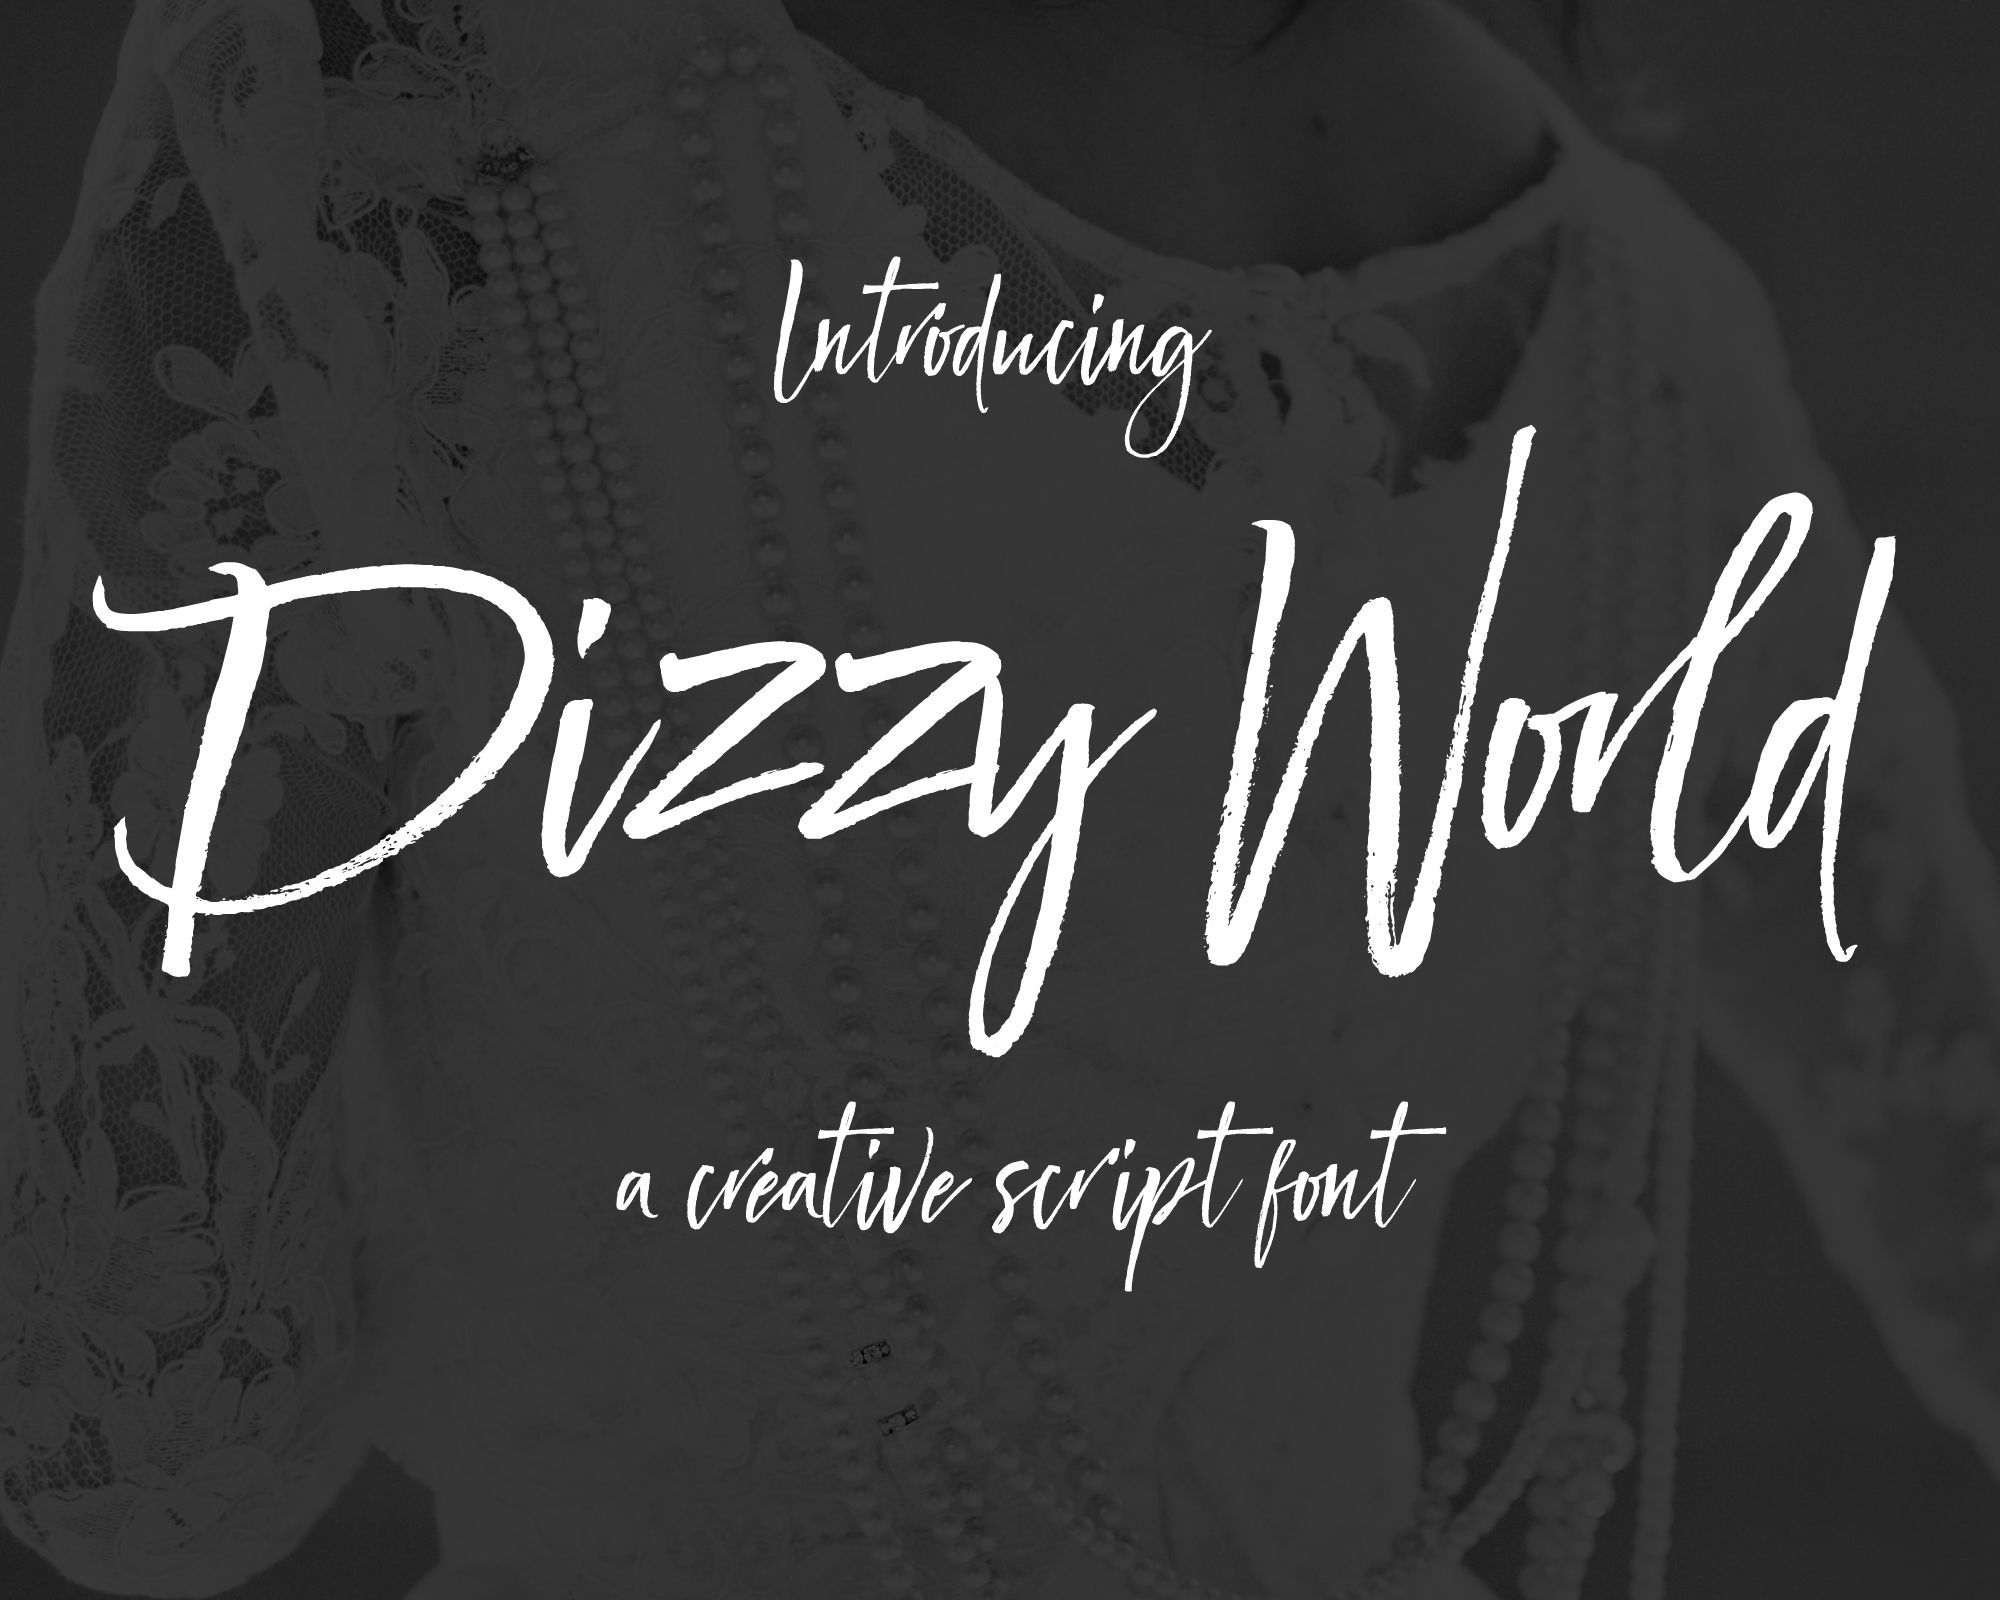 Dizzy World Font | Title design, Uppercase and lowercase ...